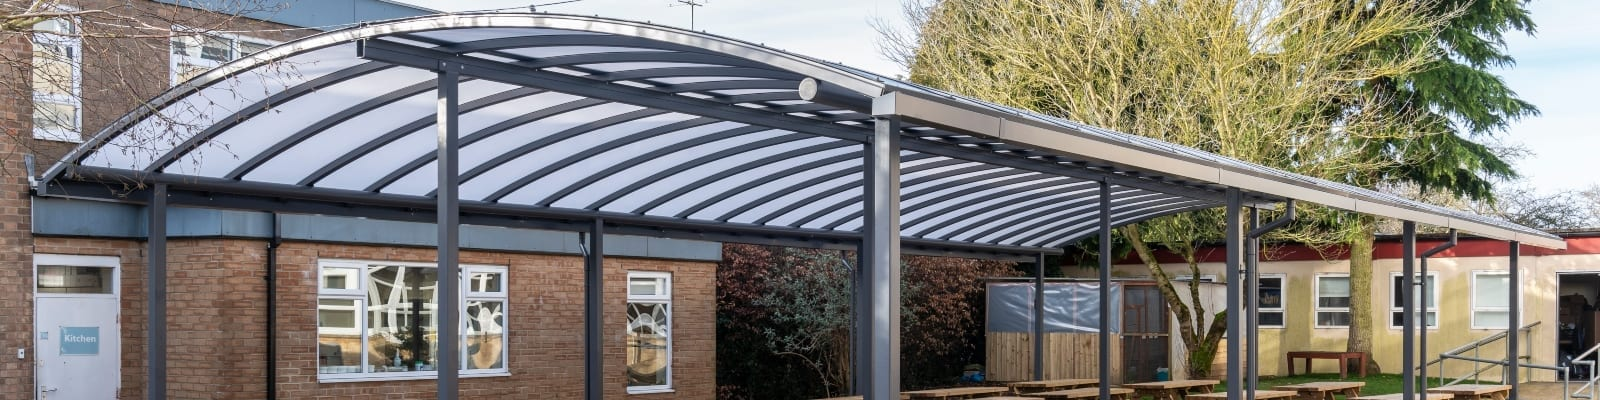 Cirencester College Curved Roof Shelter